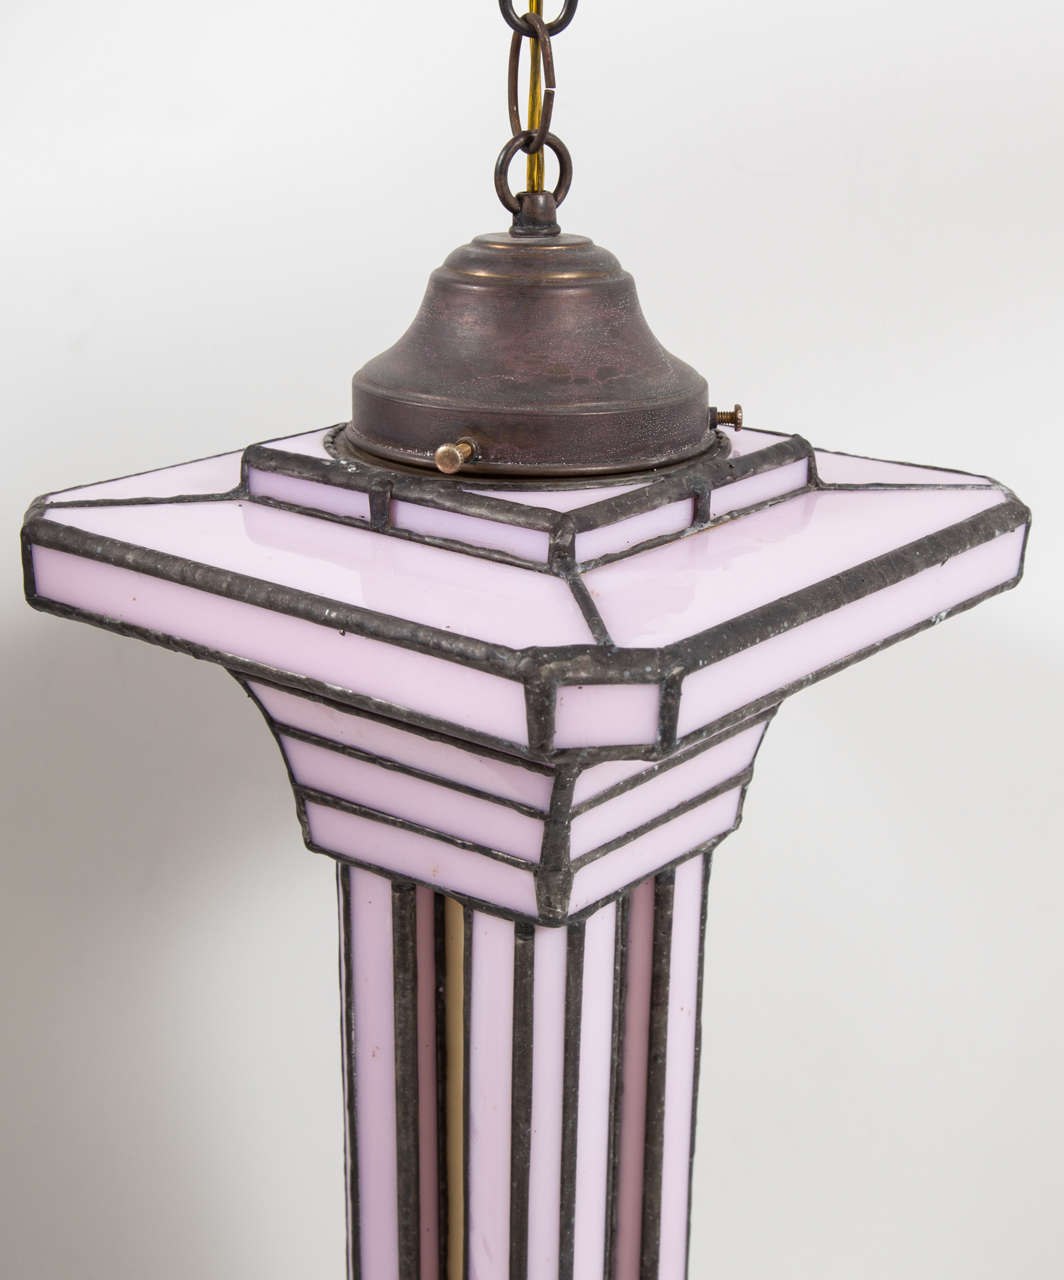 Stained Set of Three Leaded Glass Pendant Light Fixture by Adam Kurtzman For Sale